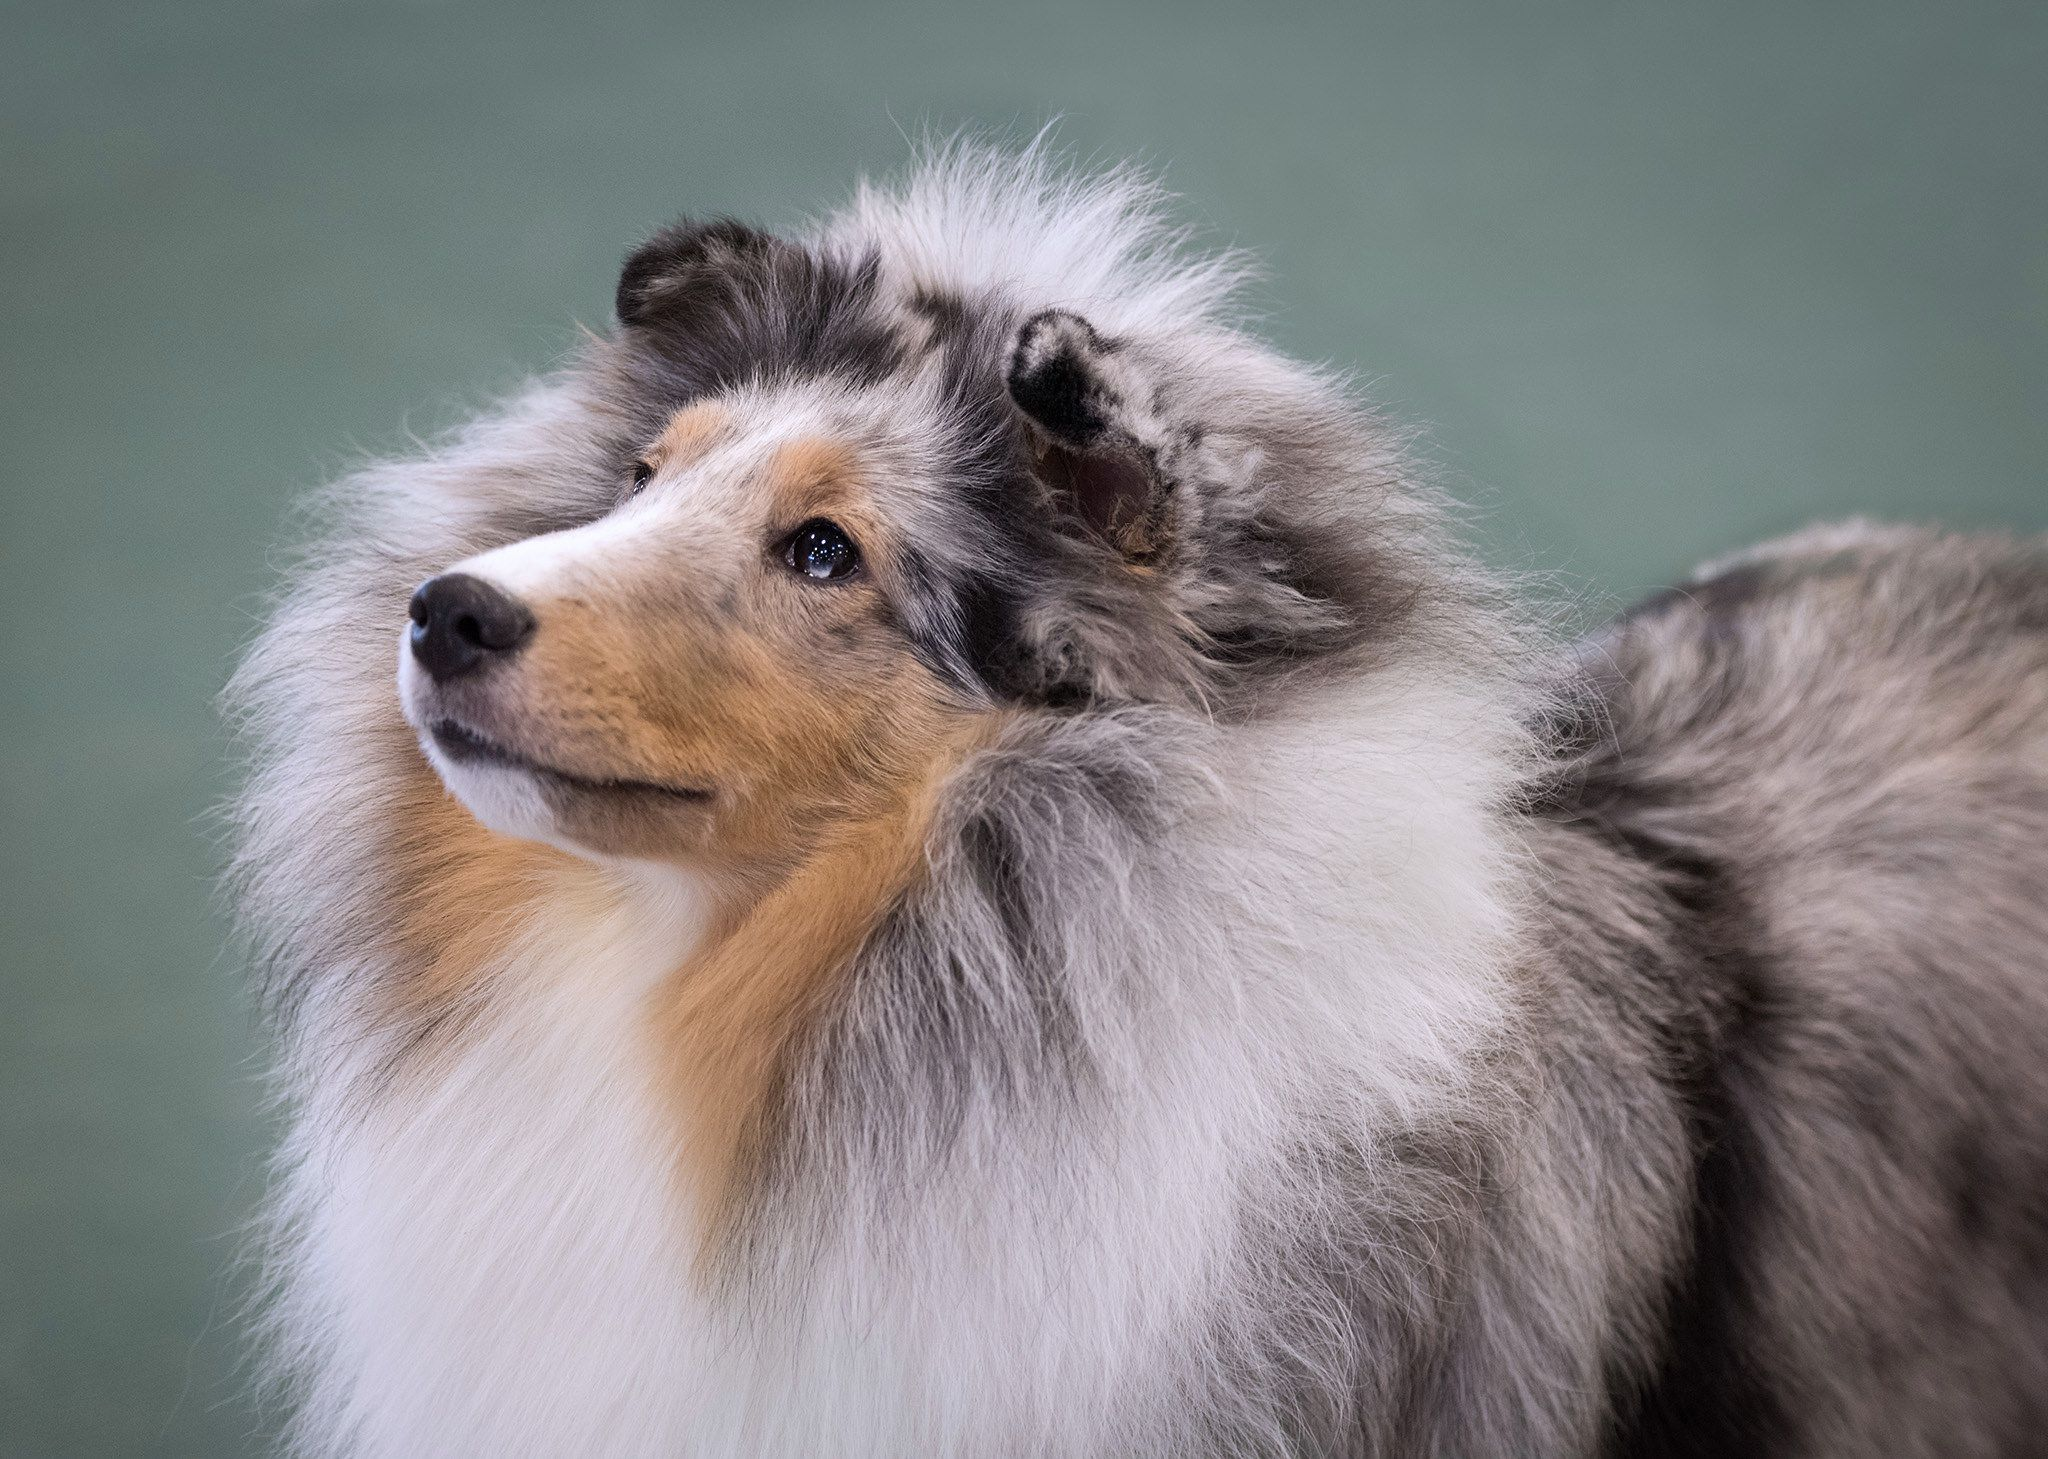 AKC Helena Fall 2017 Sheltie, Blue merle sheltie